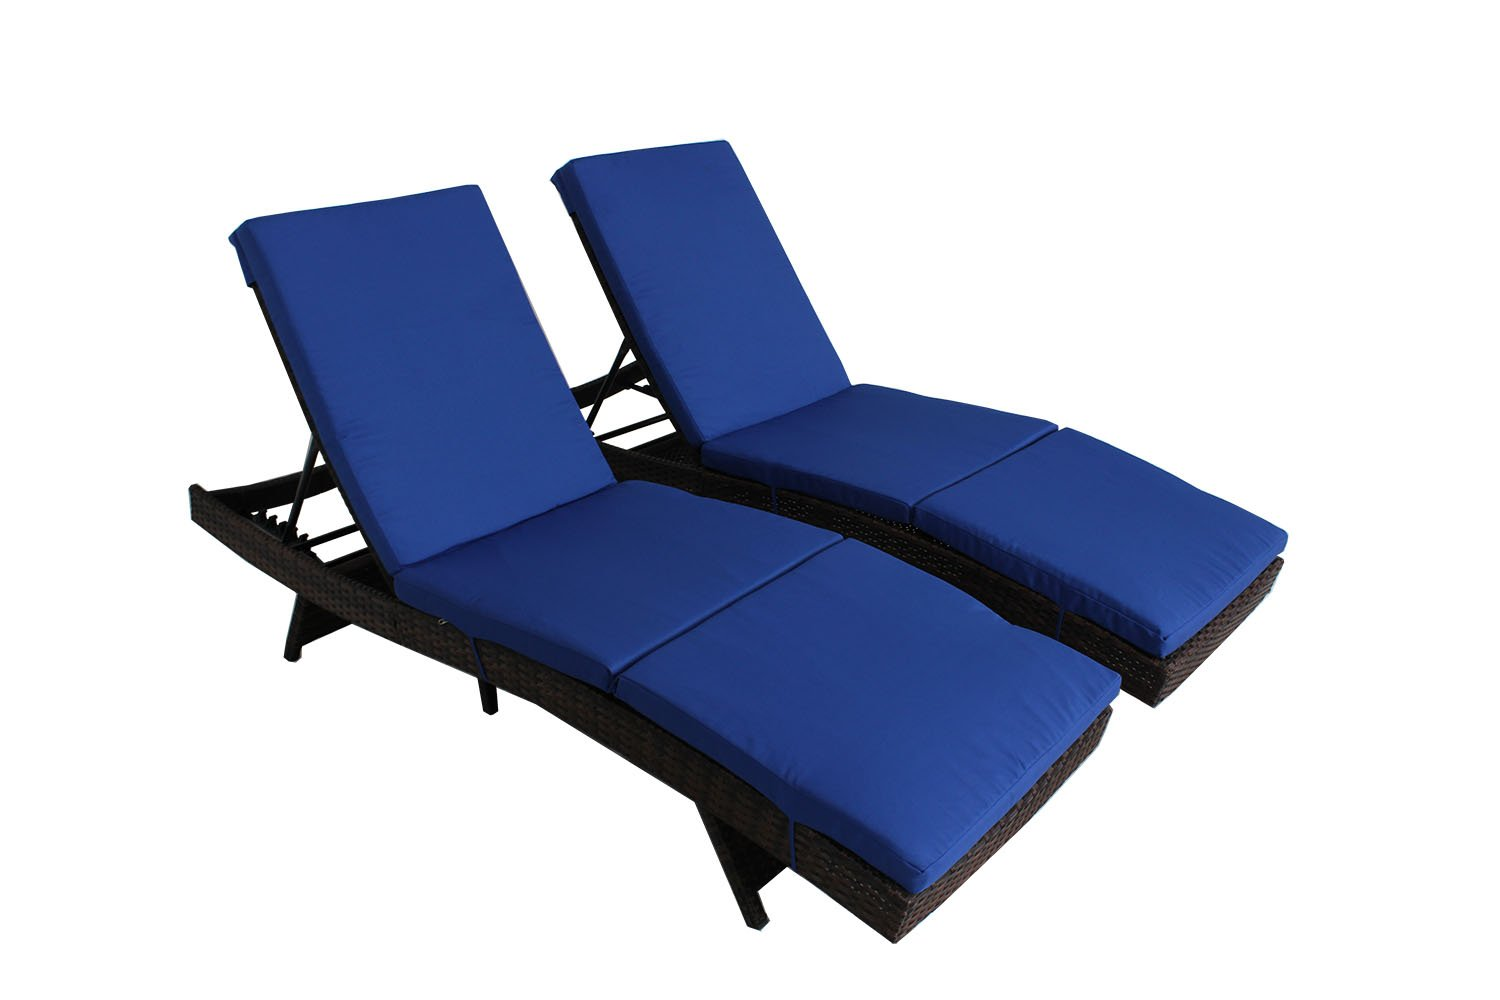 Outime Patio Furniture Chair Brown PE Rattan Wicker Adjustable Backrest Cushioned Chaise Lounge Deck Pool Chair(Royal Blue Cushions,Set of 2)